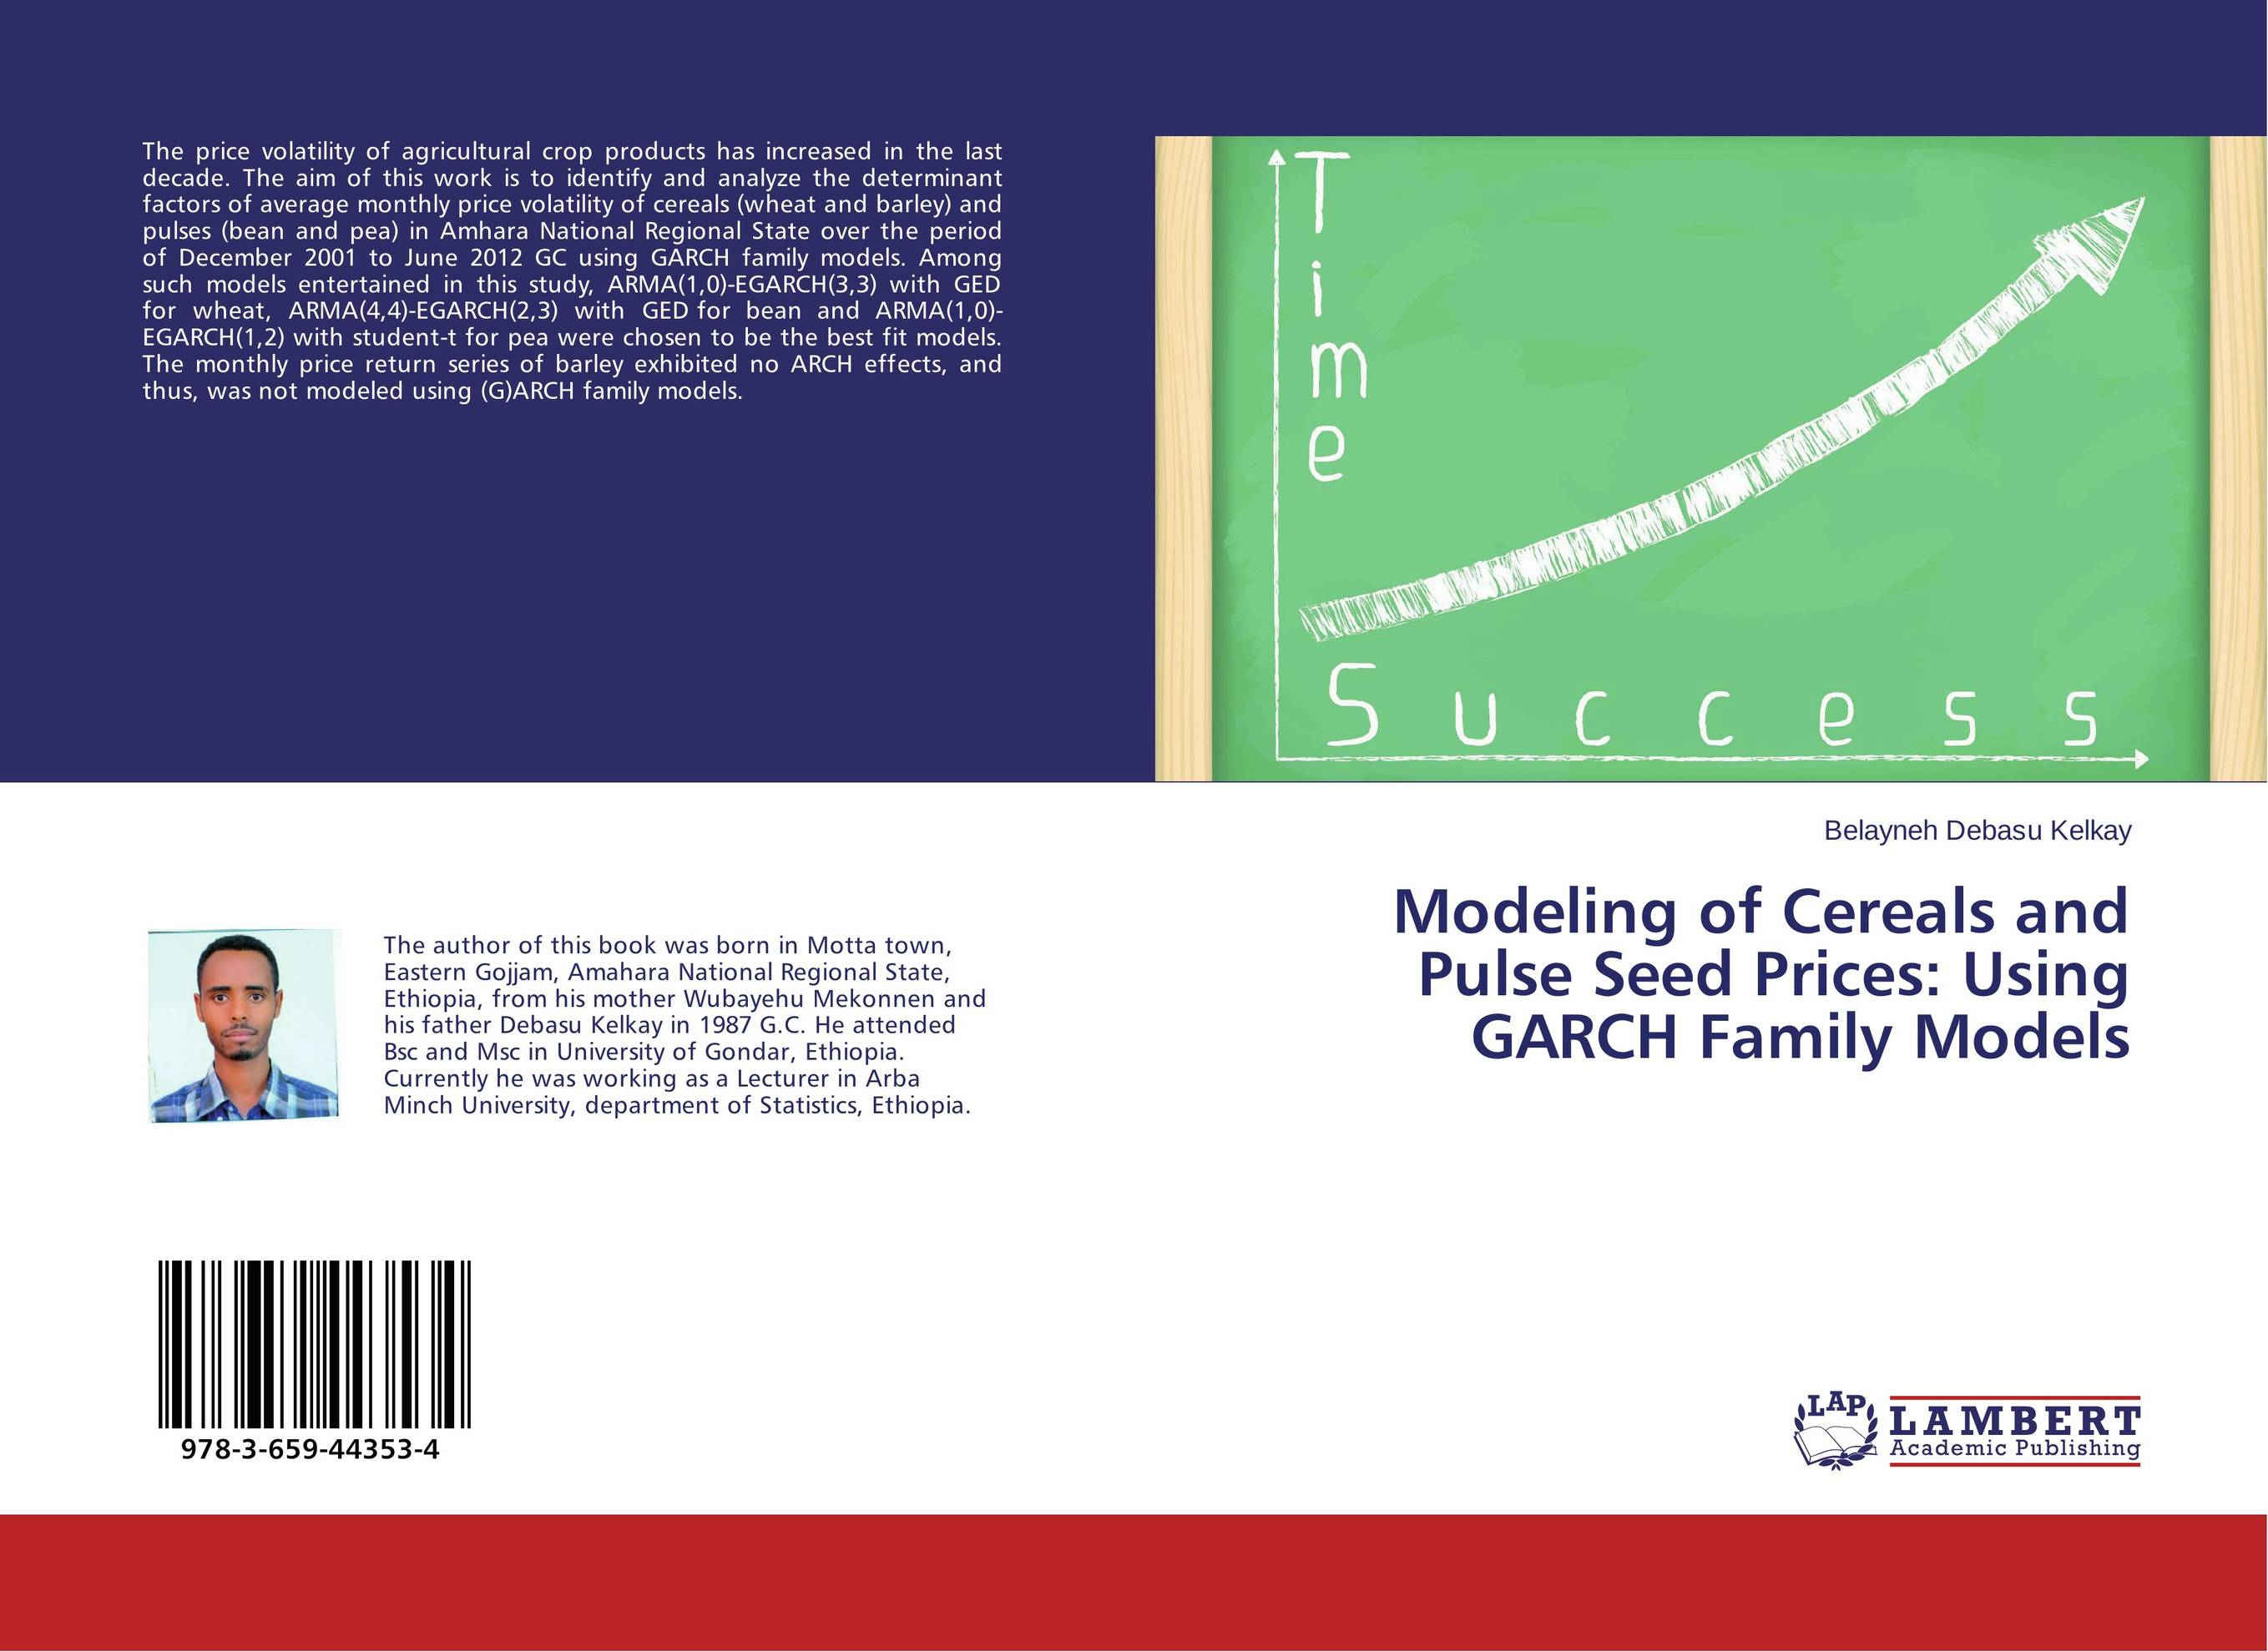 Modeling of Cereals and Pulse Seed Prices: Using GARCH Family Models butterflies in the barley